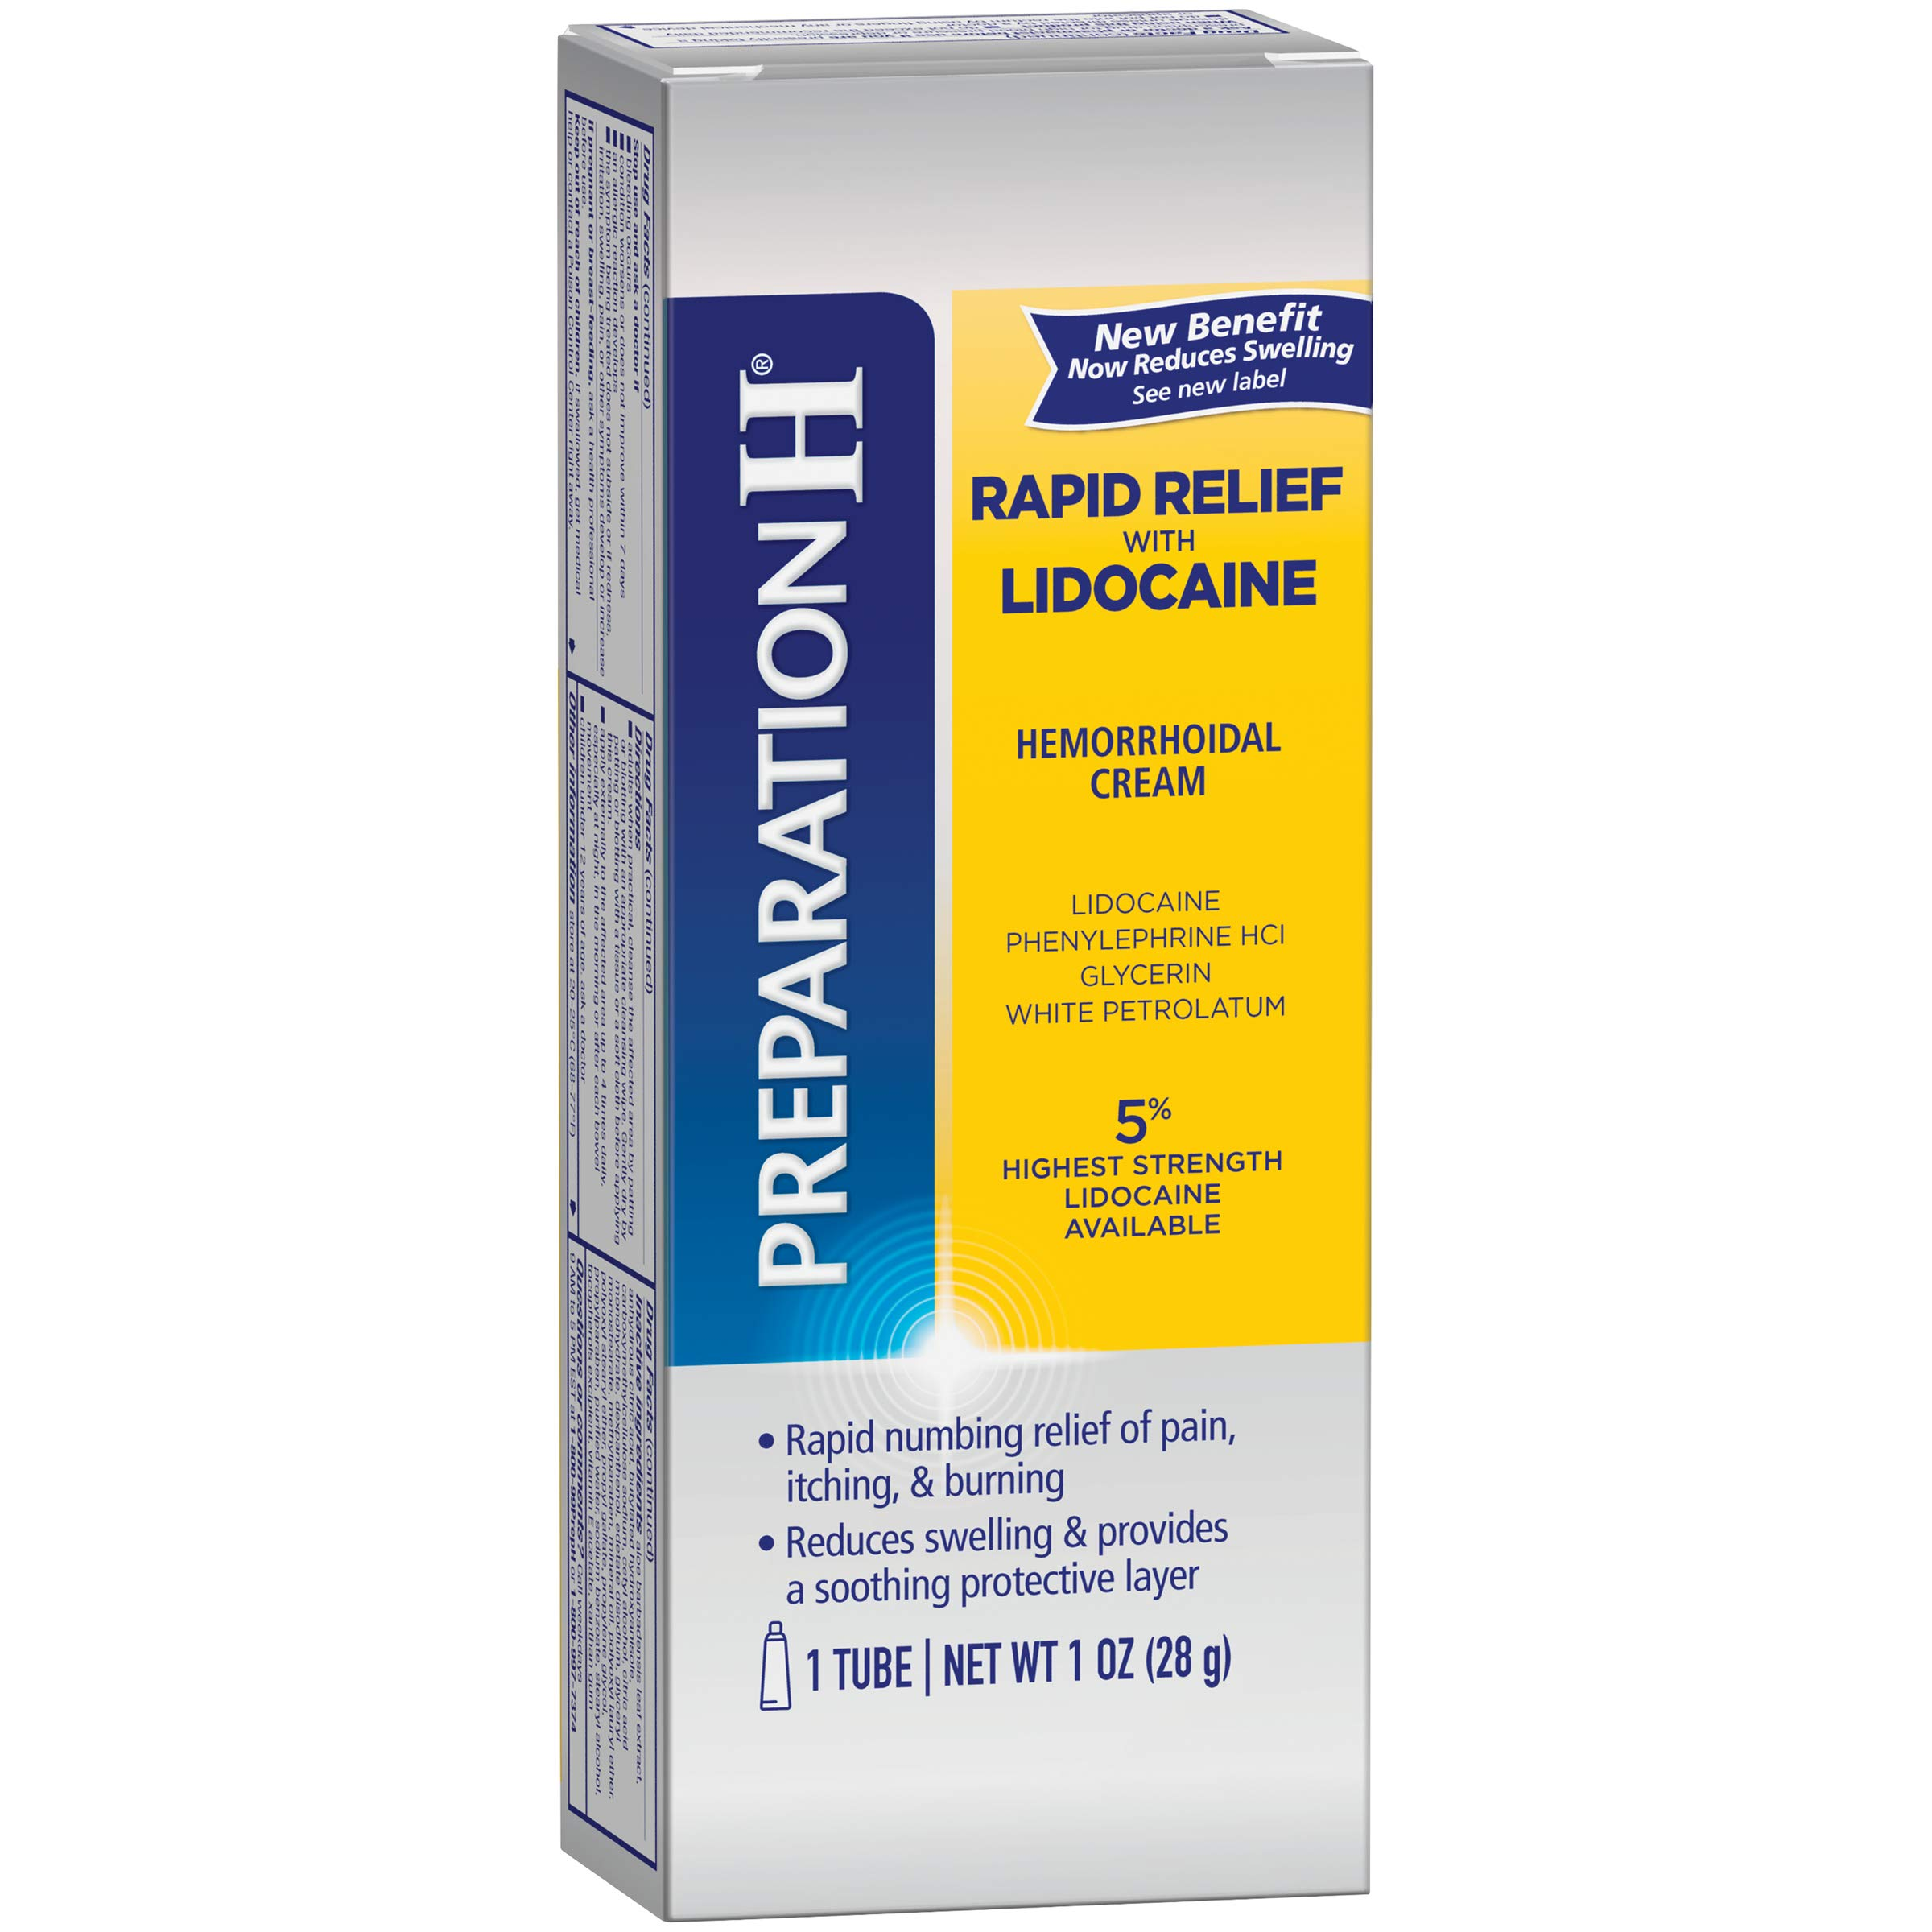 Preparation H Rapid Relief with Lidocaine Hemorrhoid Symptom Treatment Cream (1.0 Ounce Tube), Numbing Relief for Pain, Burning & Itching